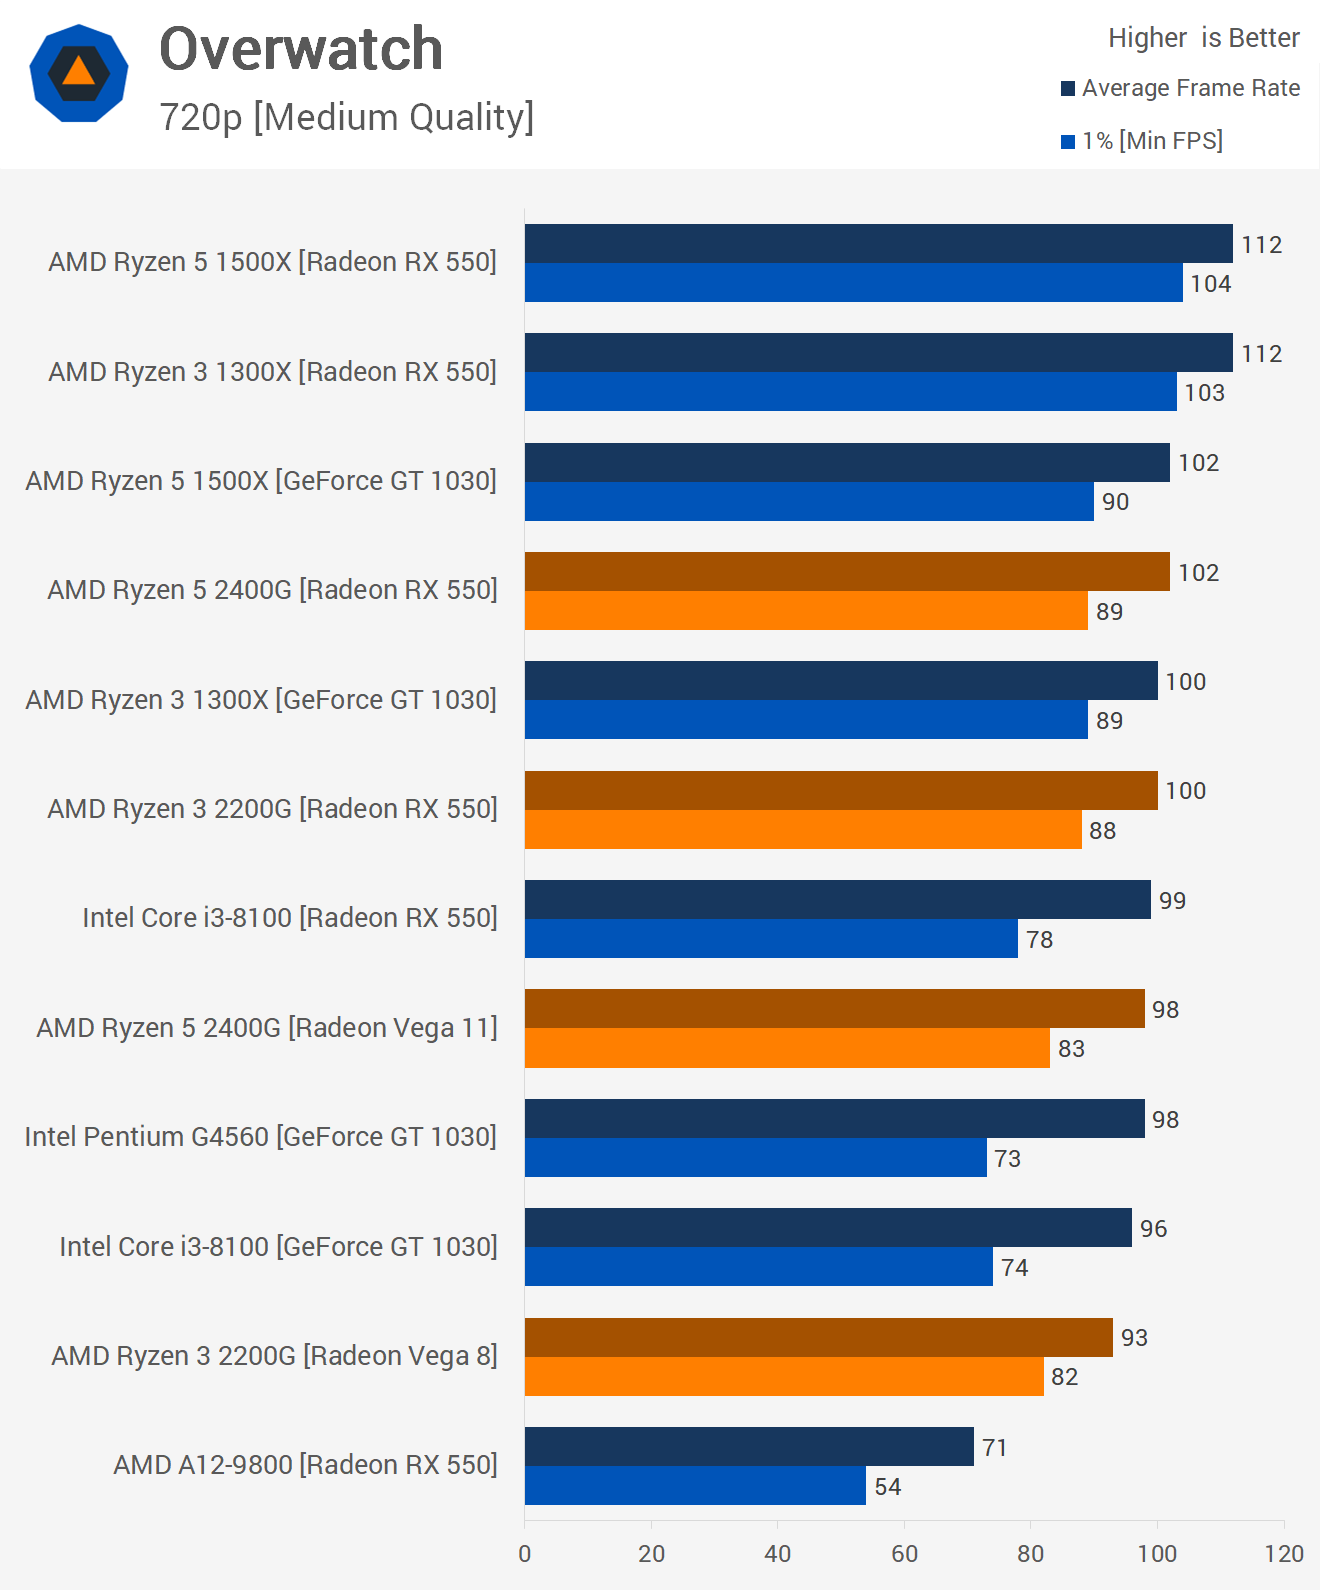 Ryzen CPU + Vega Graphics on a Chip: AMD Ryzen 5 2400G & Ryzen 3